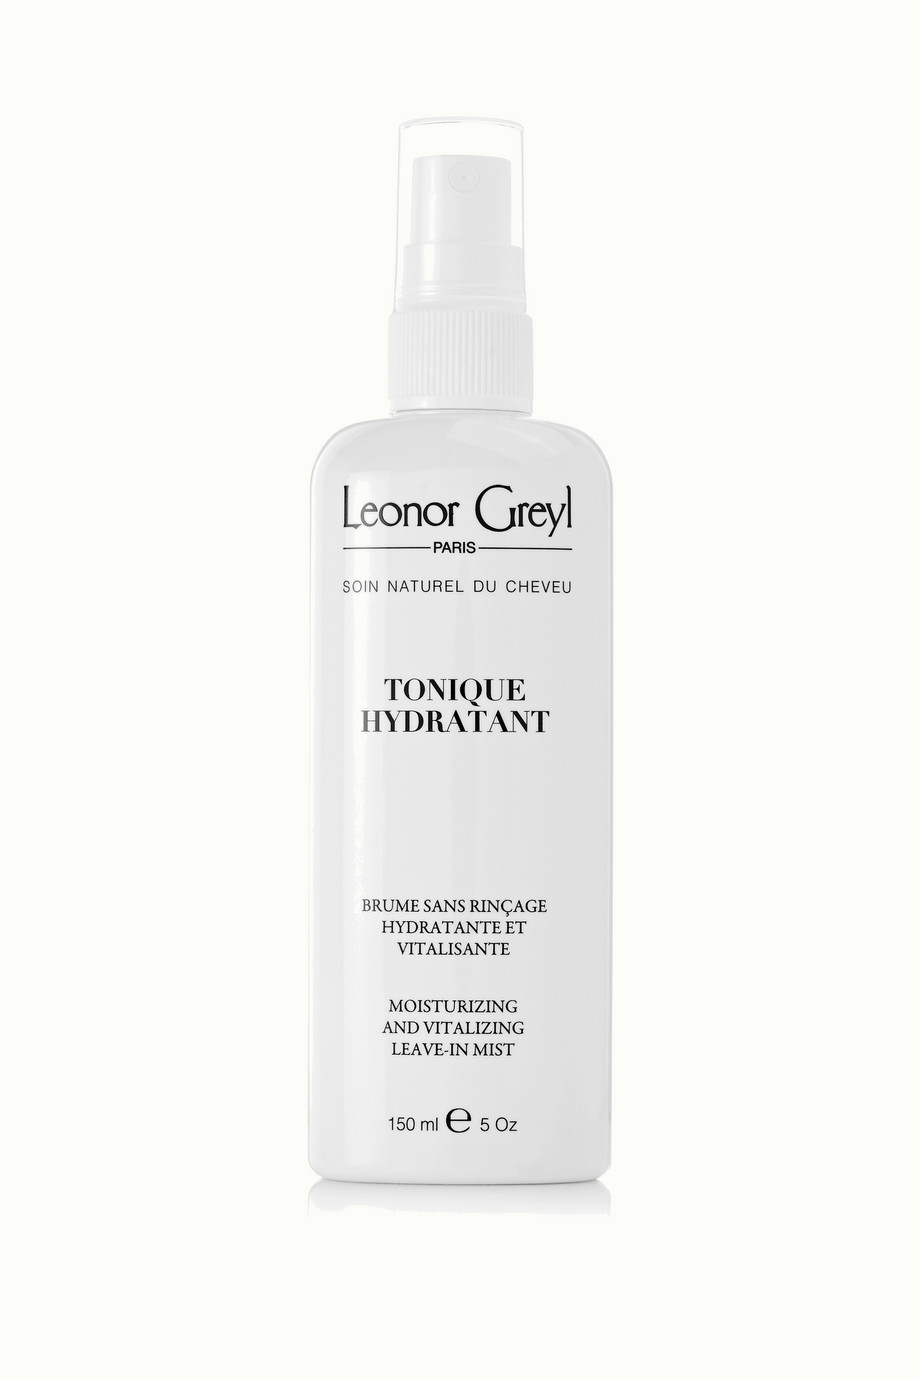 Leonor Greyl Paris Tonique Hydratant Moisturizing Leave-In Treatment, 150ml